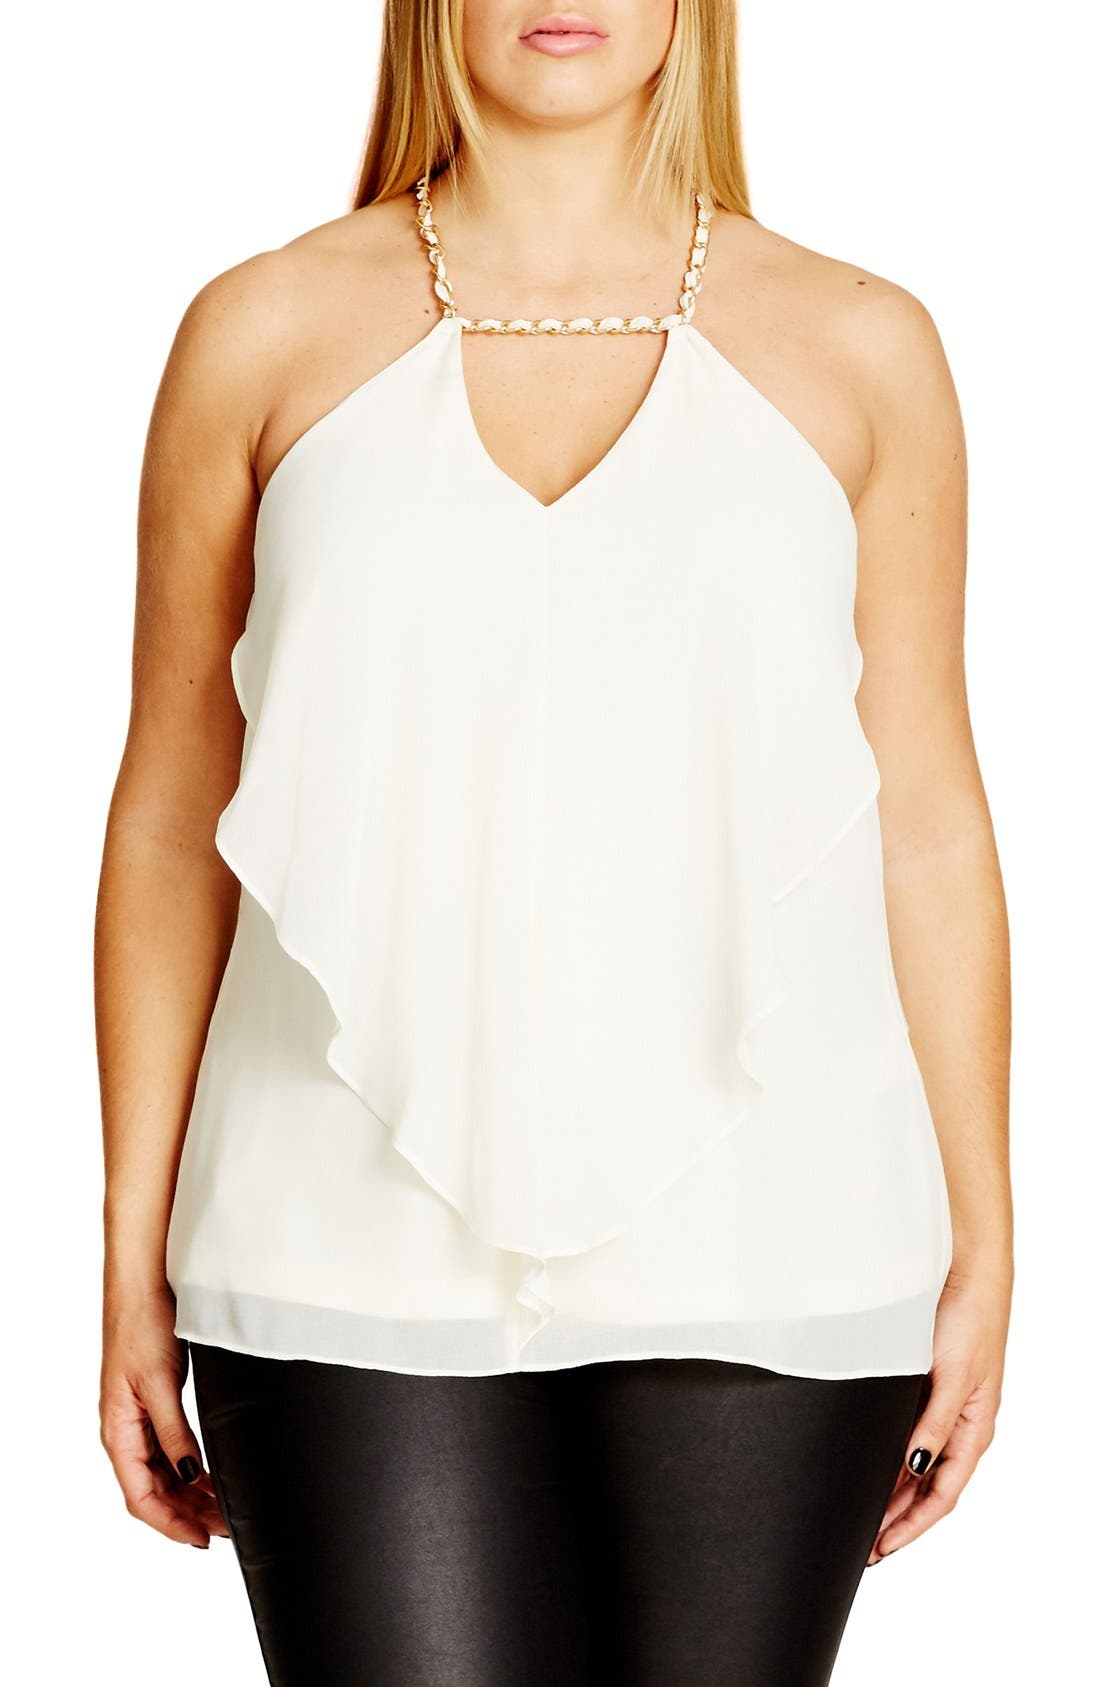 CITY CHIC 'Impress' Chain Detail Draped Chiffon Camisole